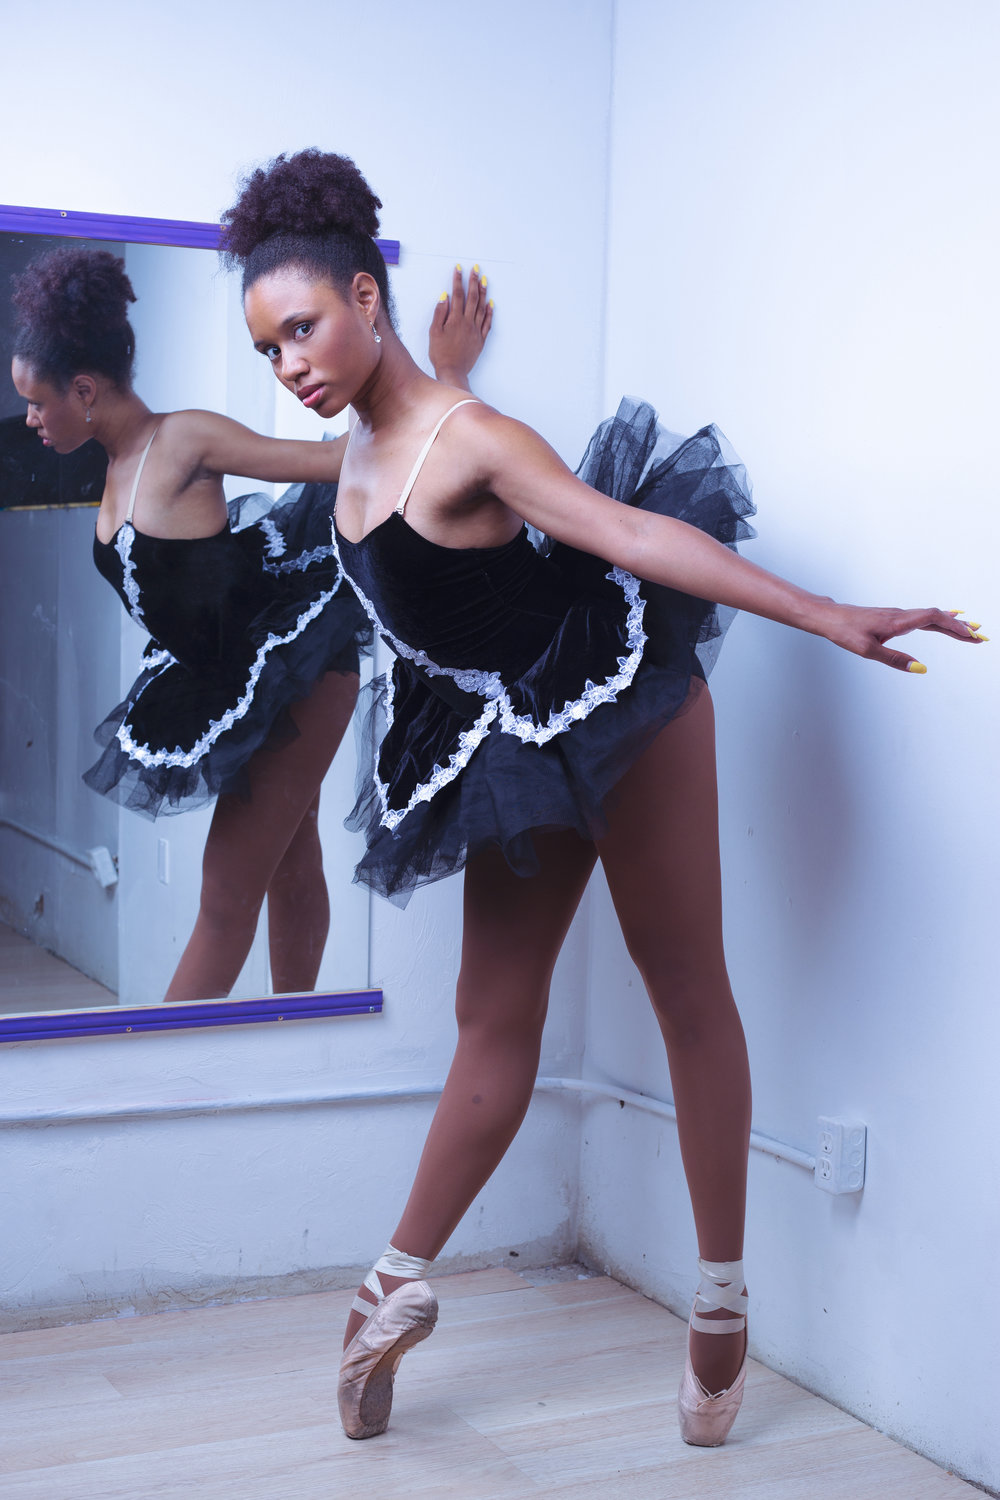 The Dance of Ballet - Chamber Photography Moments by Antoine Hart